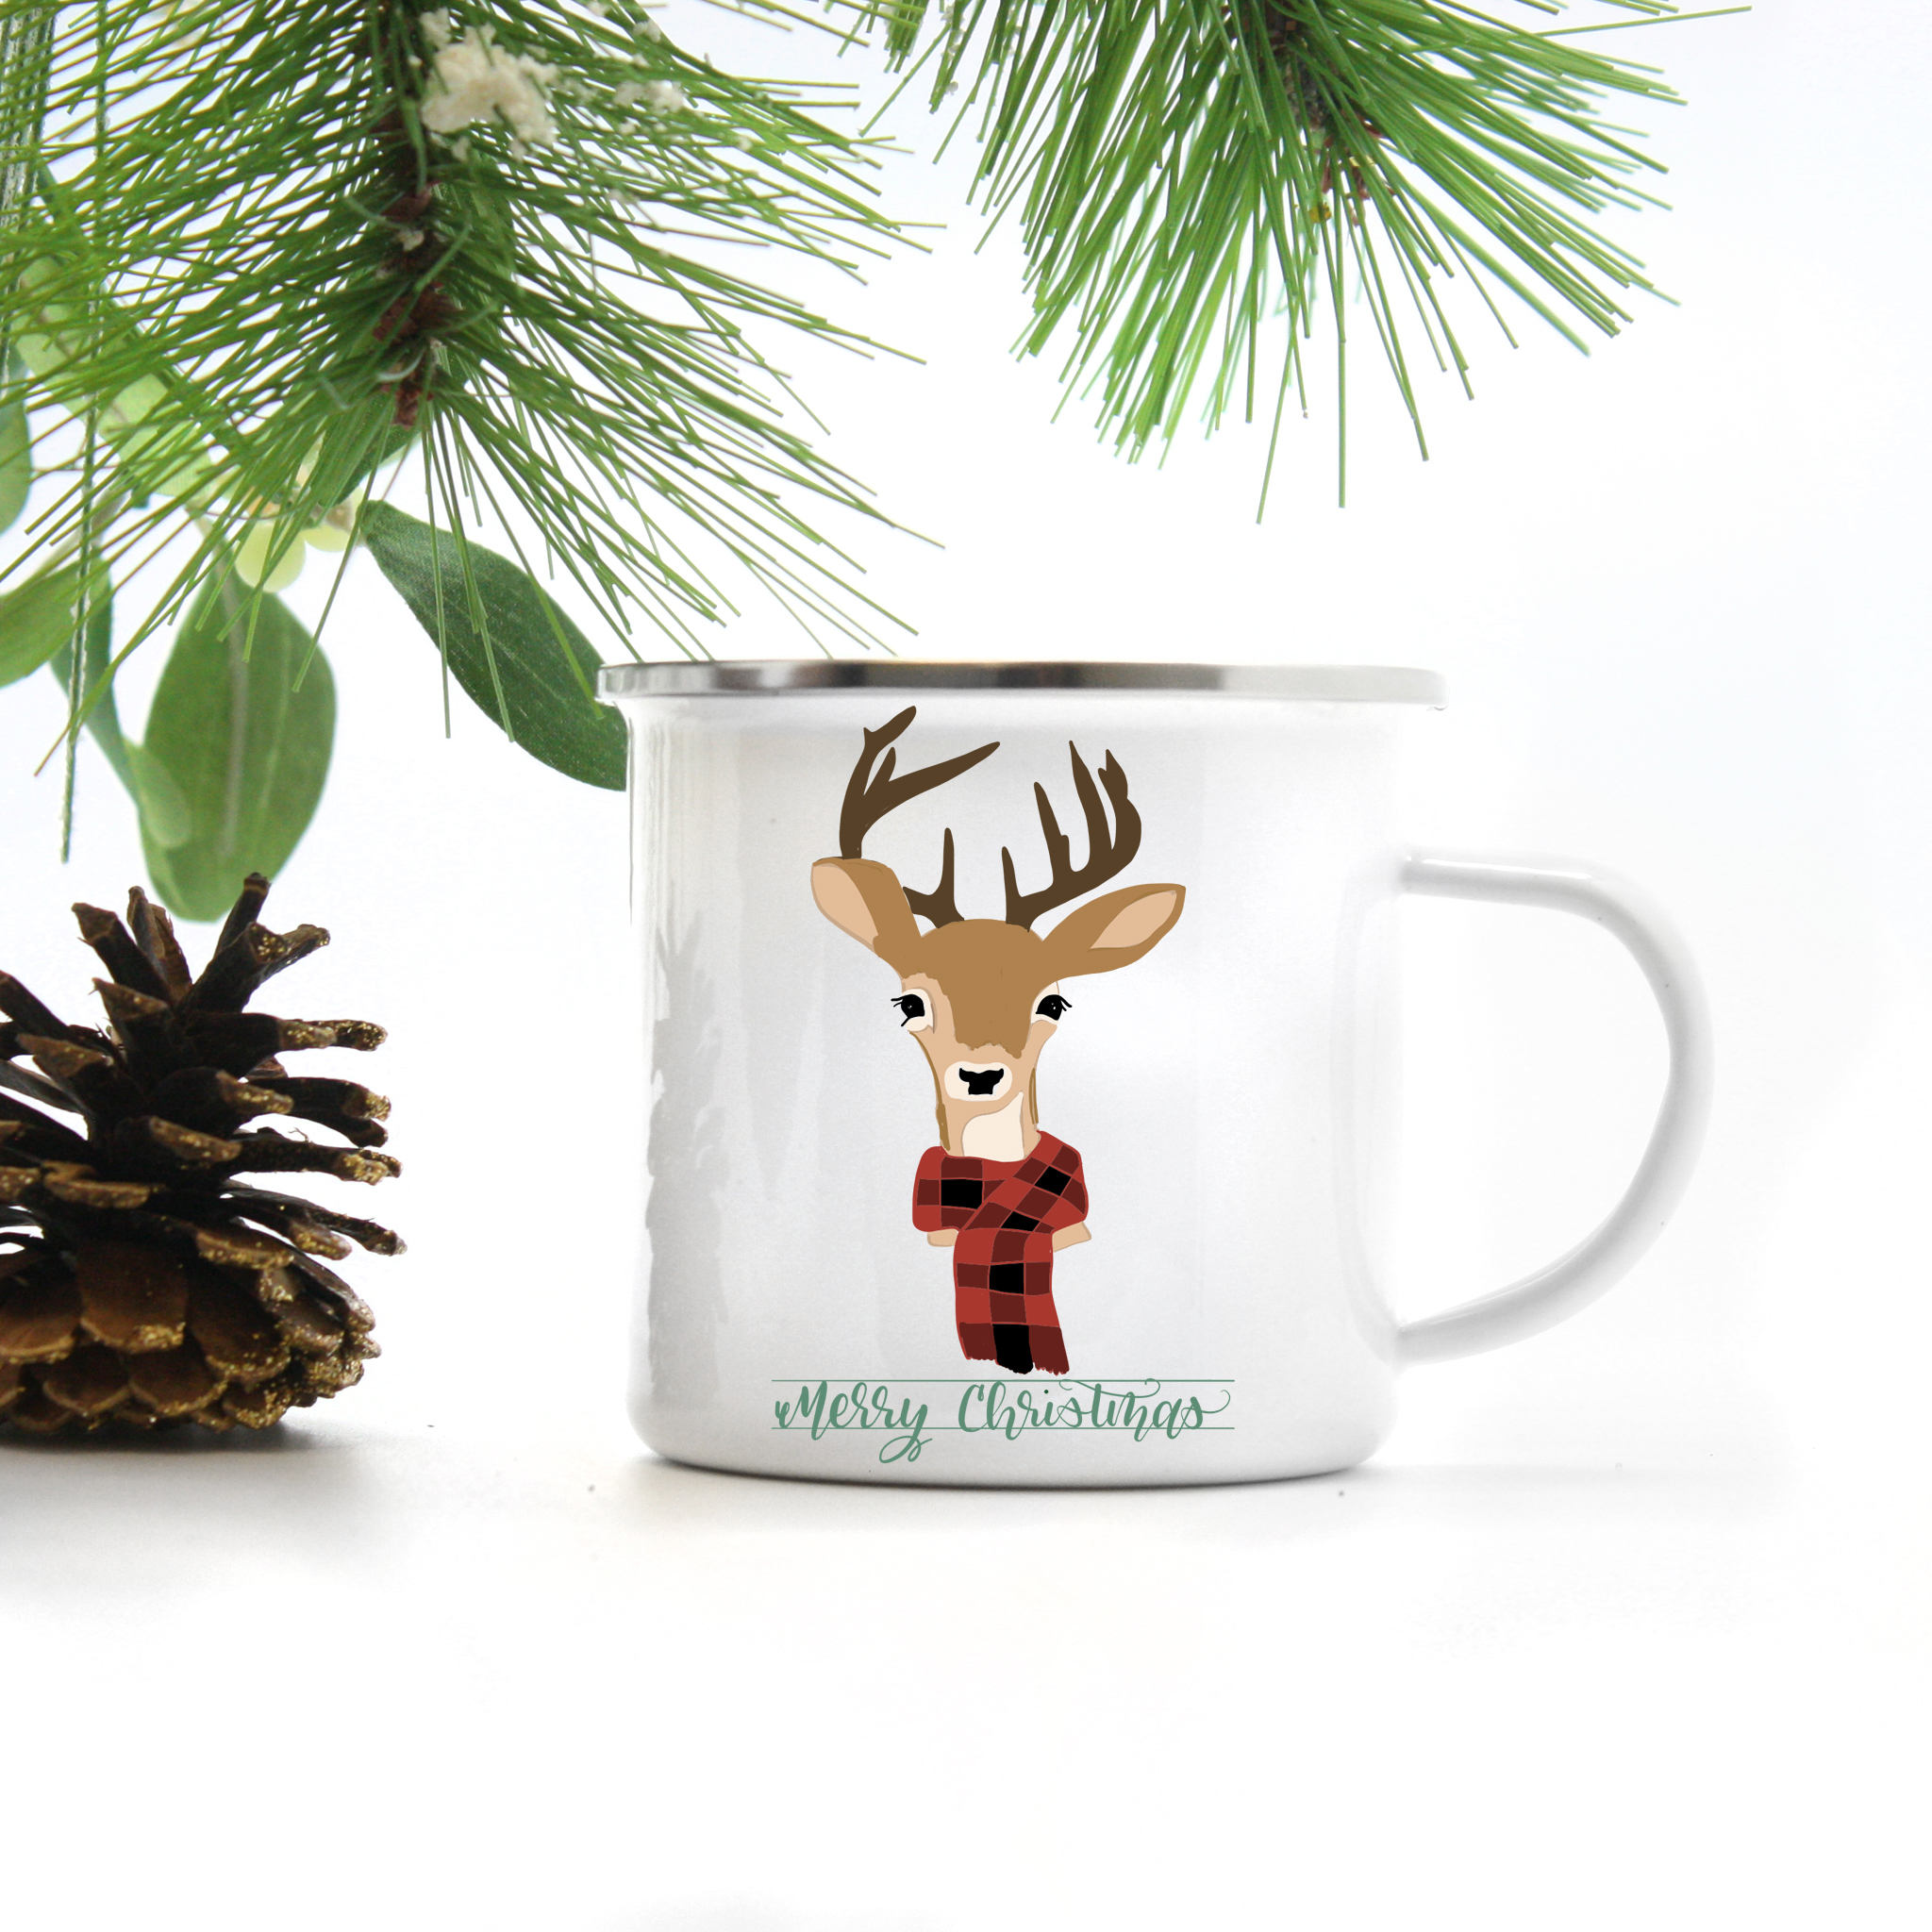 Christmas Coffee Mugs.Reindeer Christmas Coffee Mug